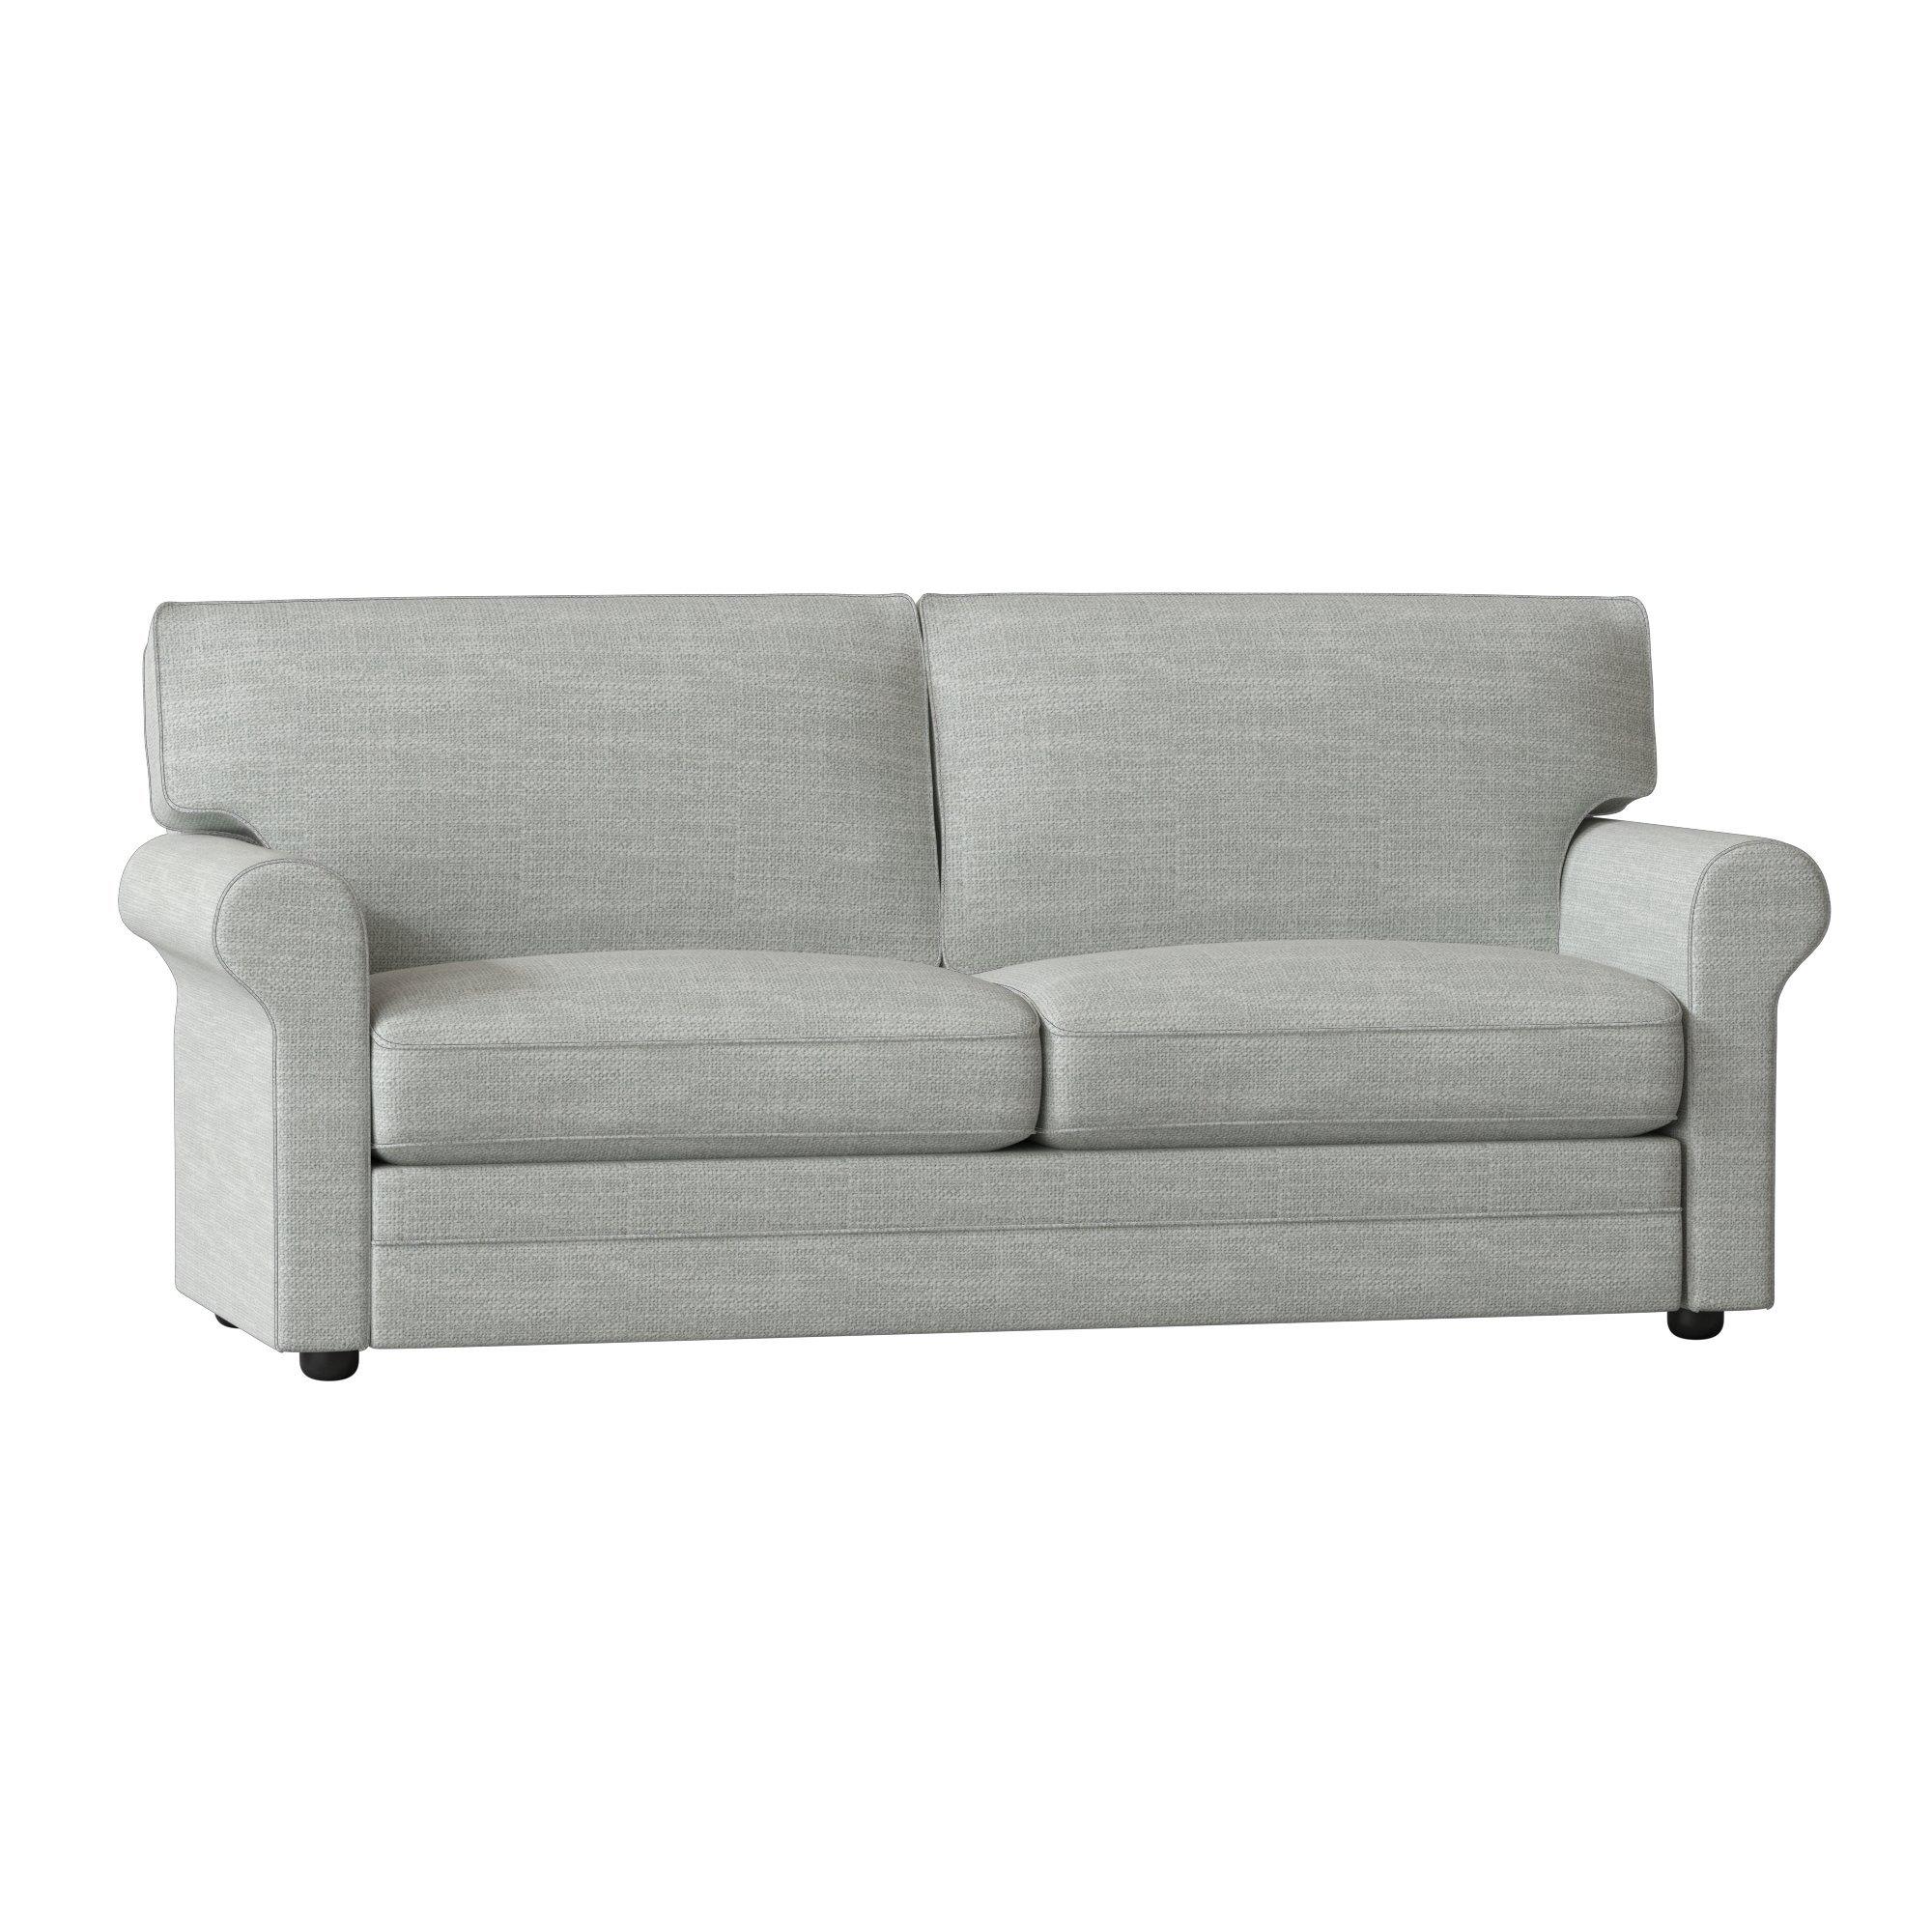 Janet Reversible Chaise Sofa | Creativeadvertisingblog Pertaining To Mcculla Sofa Sectionals With Reversible Chaise (View 20 of 30)